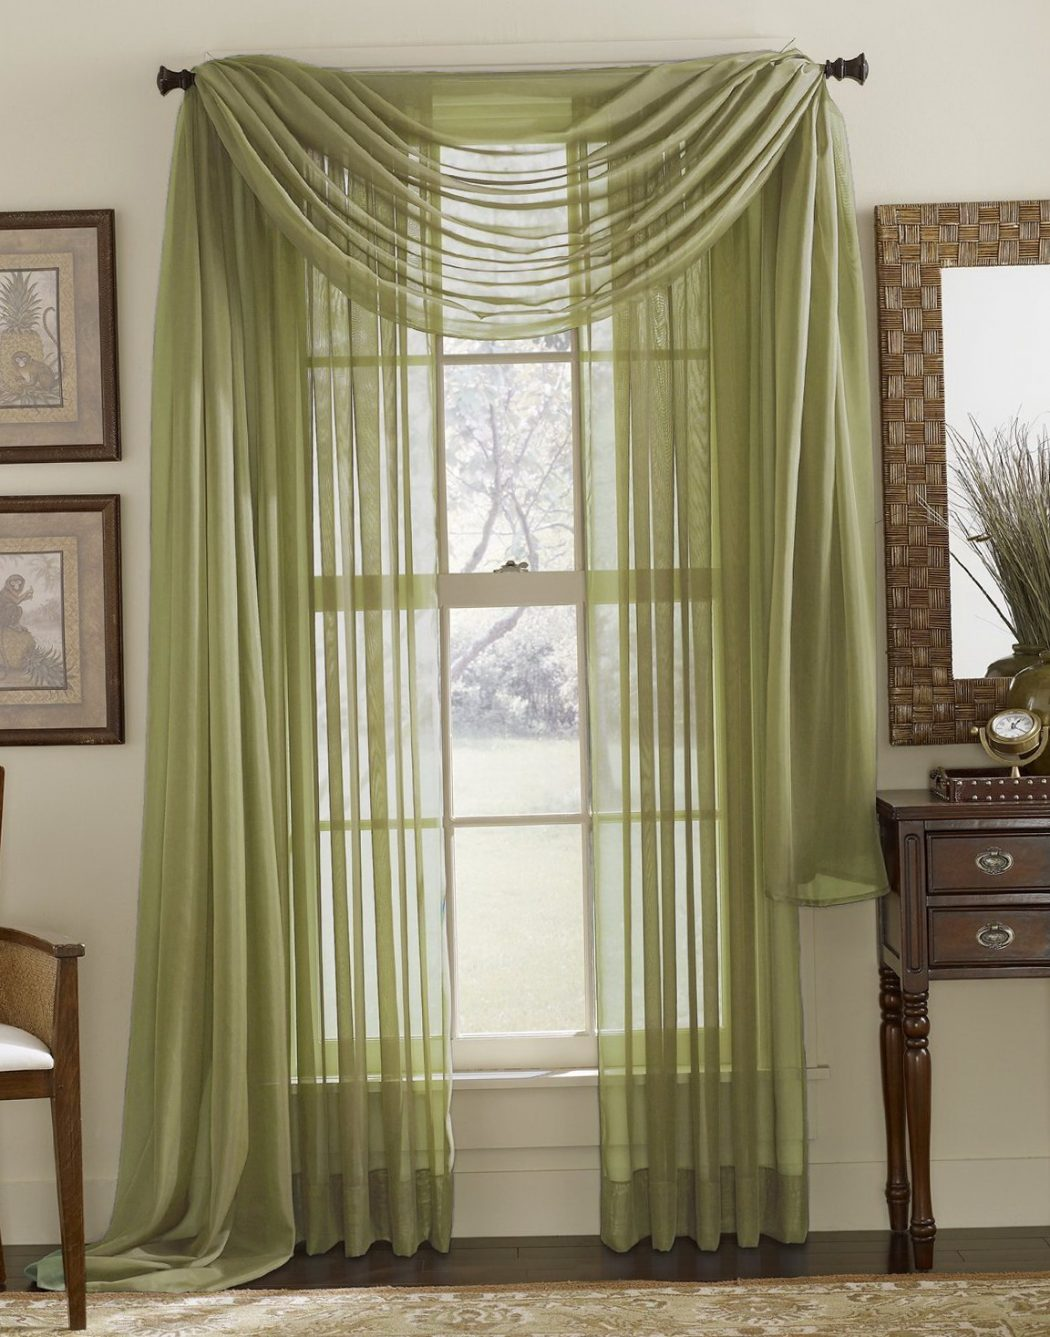 Lovely-Green-Sheer-Curtains-97-In-with-Green-Sheer-Curtains 20+ Hottest Curtain Design Ideas for 2020